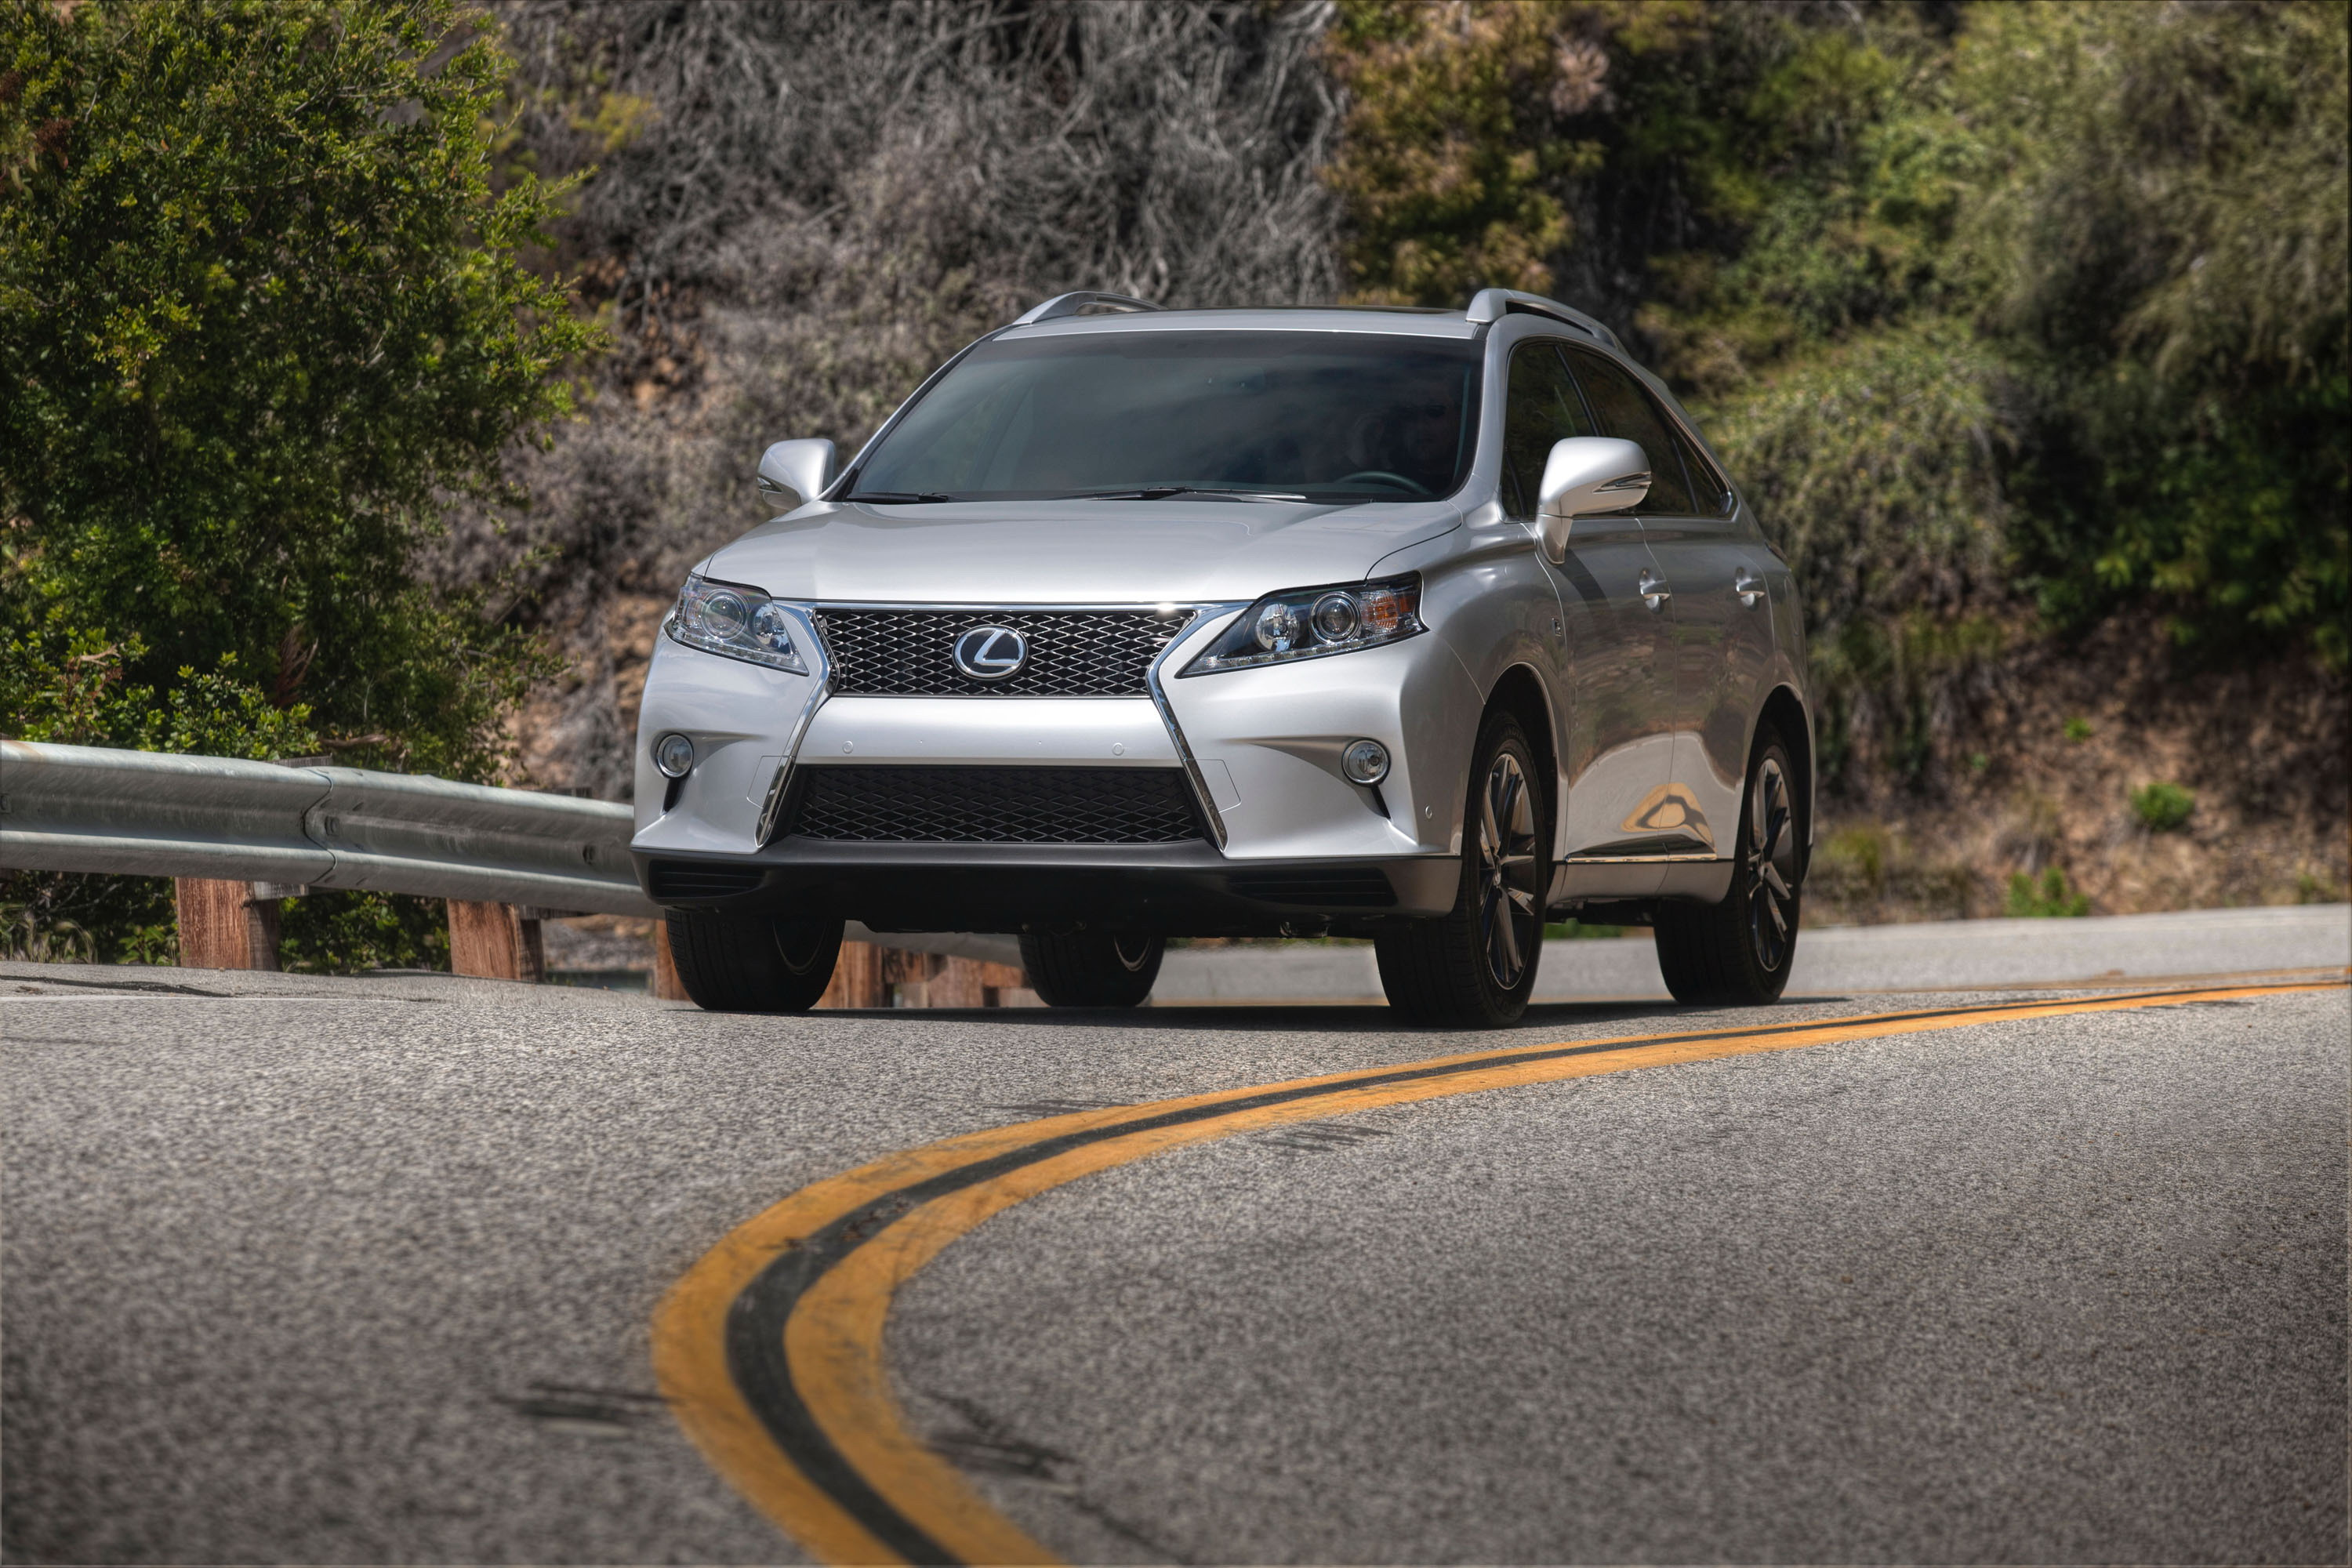 lexus city the f rx park dad photos bud long wells in at party a sport denver favorite